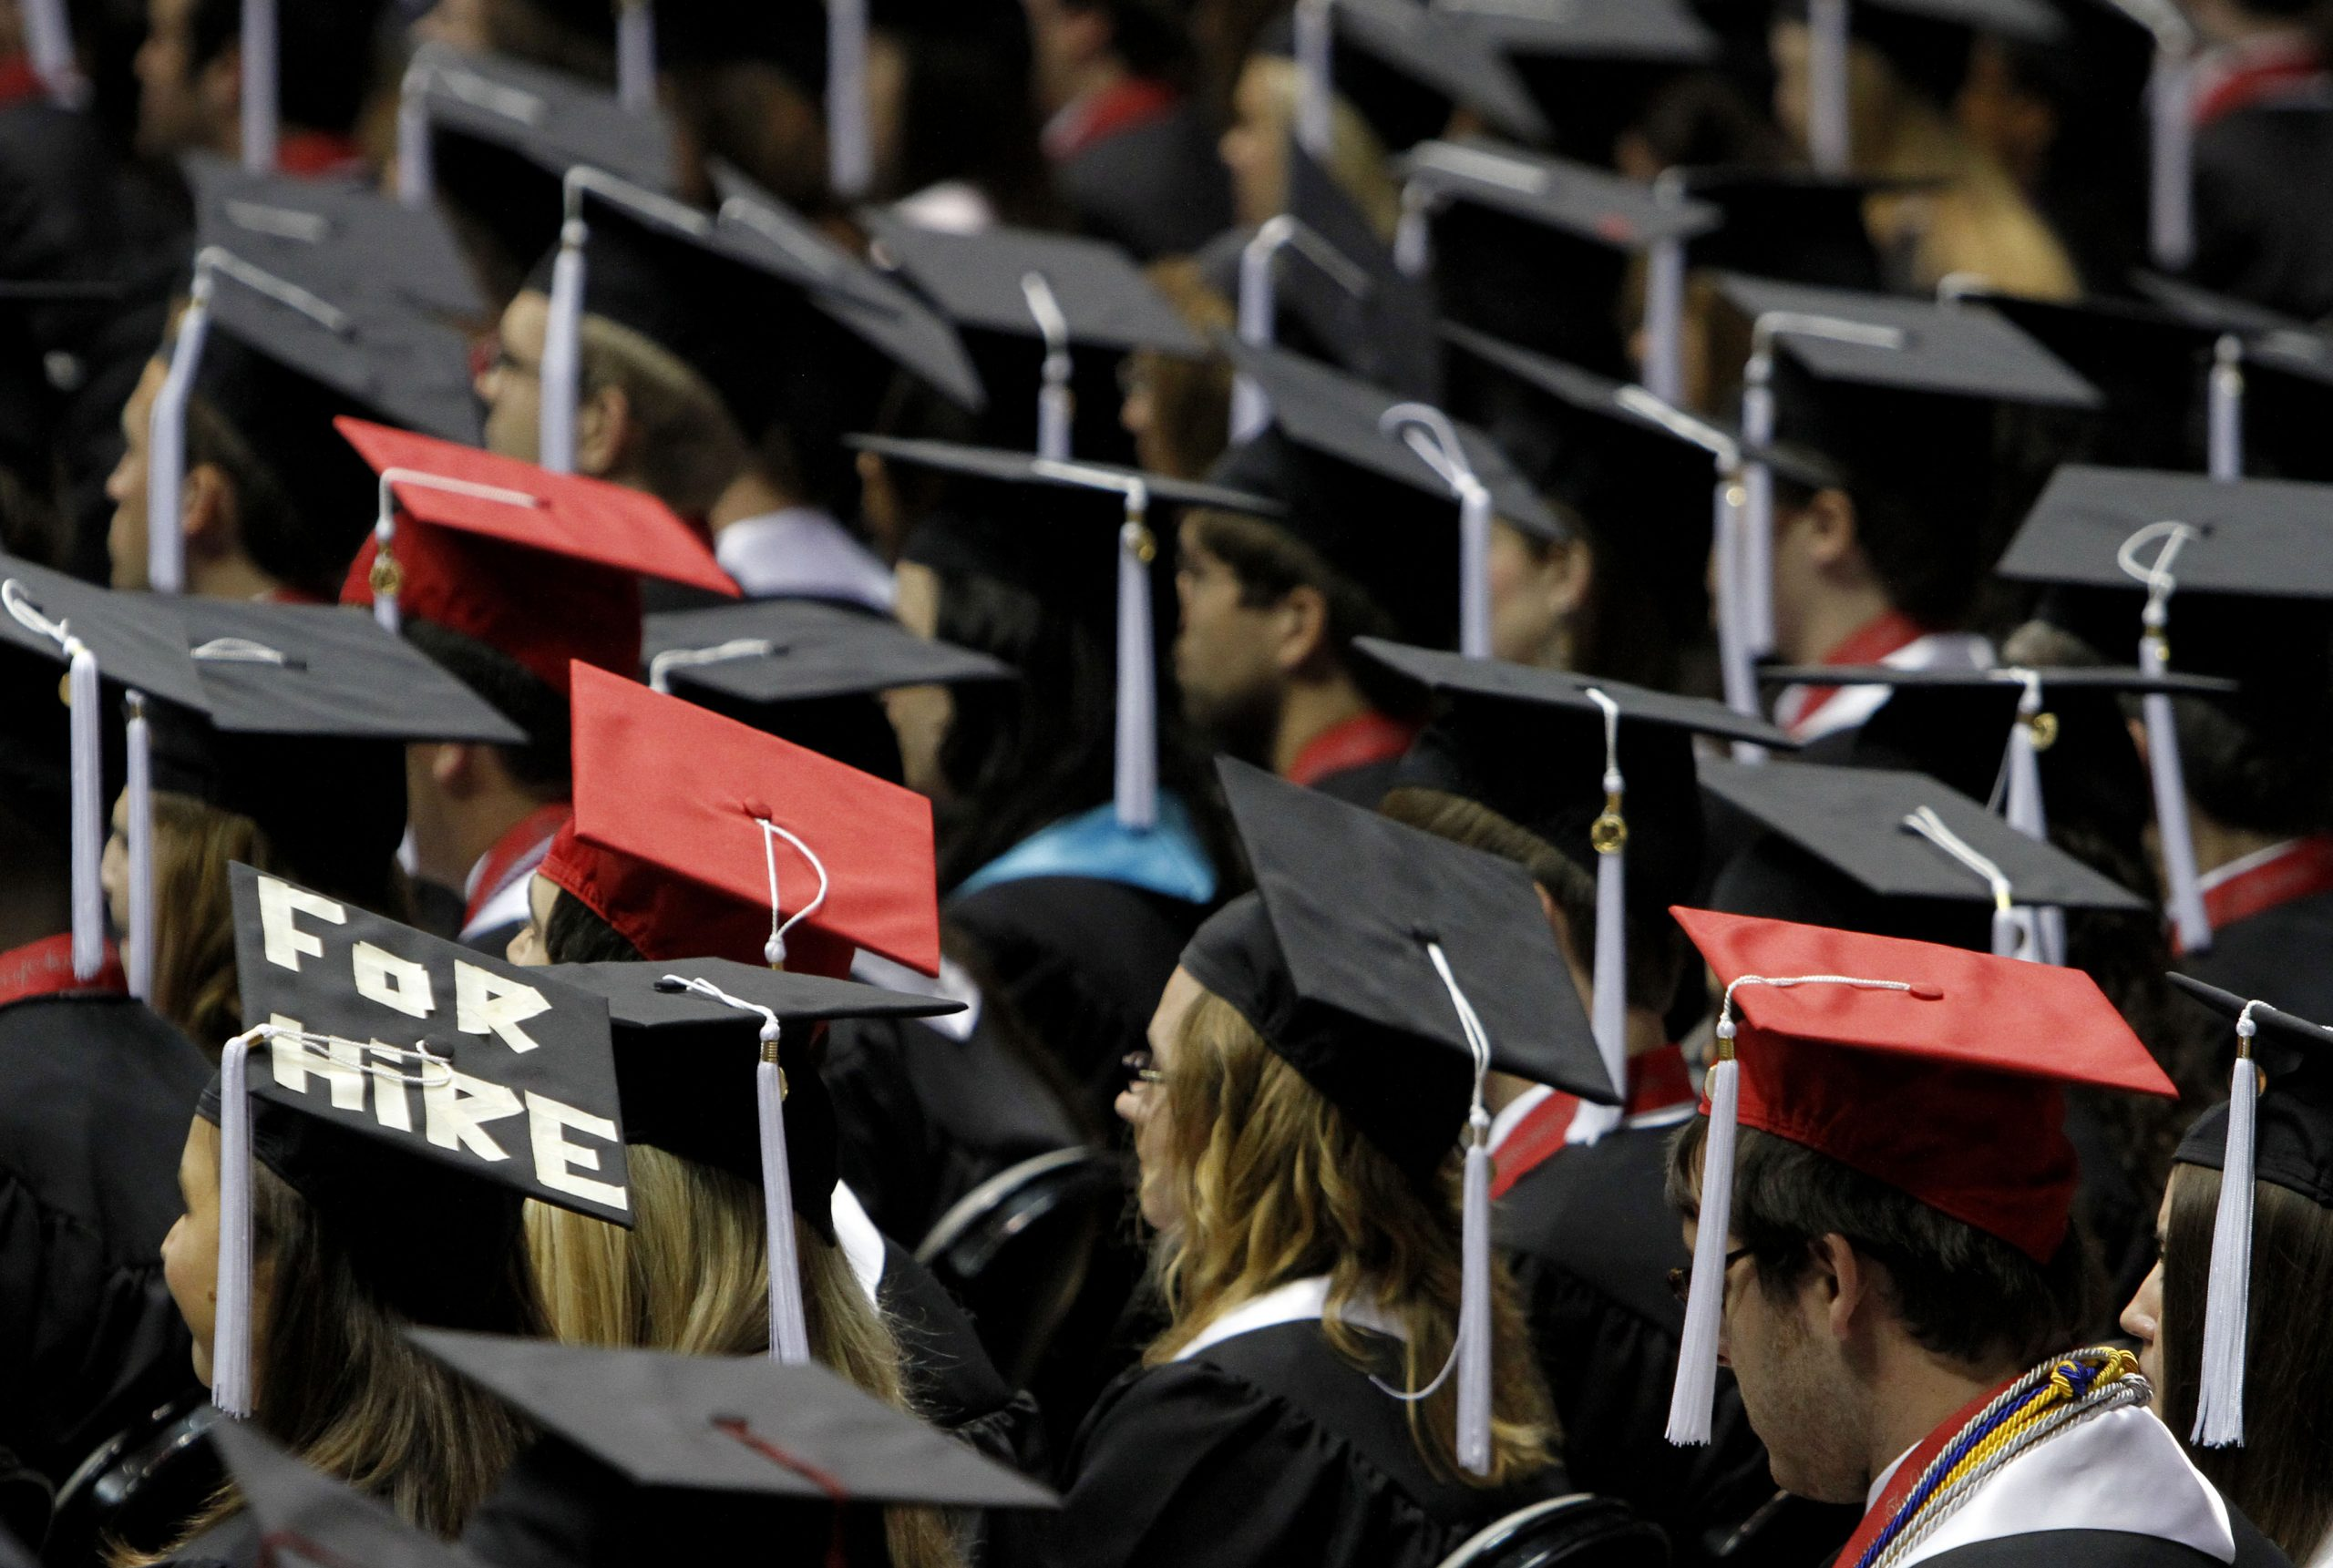 Colleges fight attempts to stop them from withholding transcripts over unpaid bills